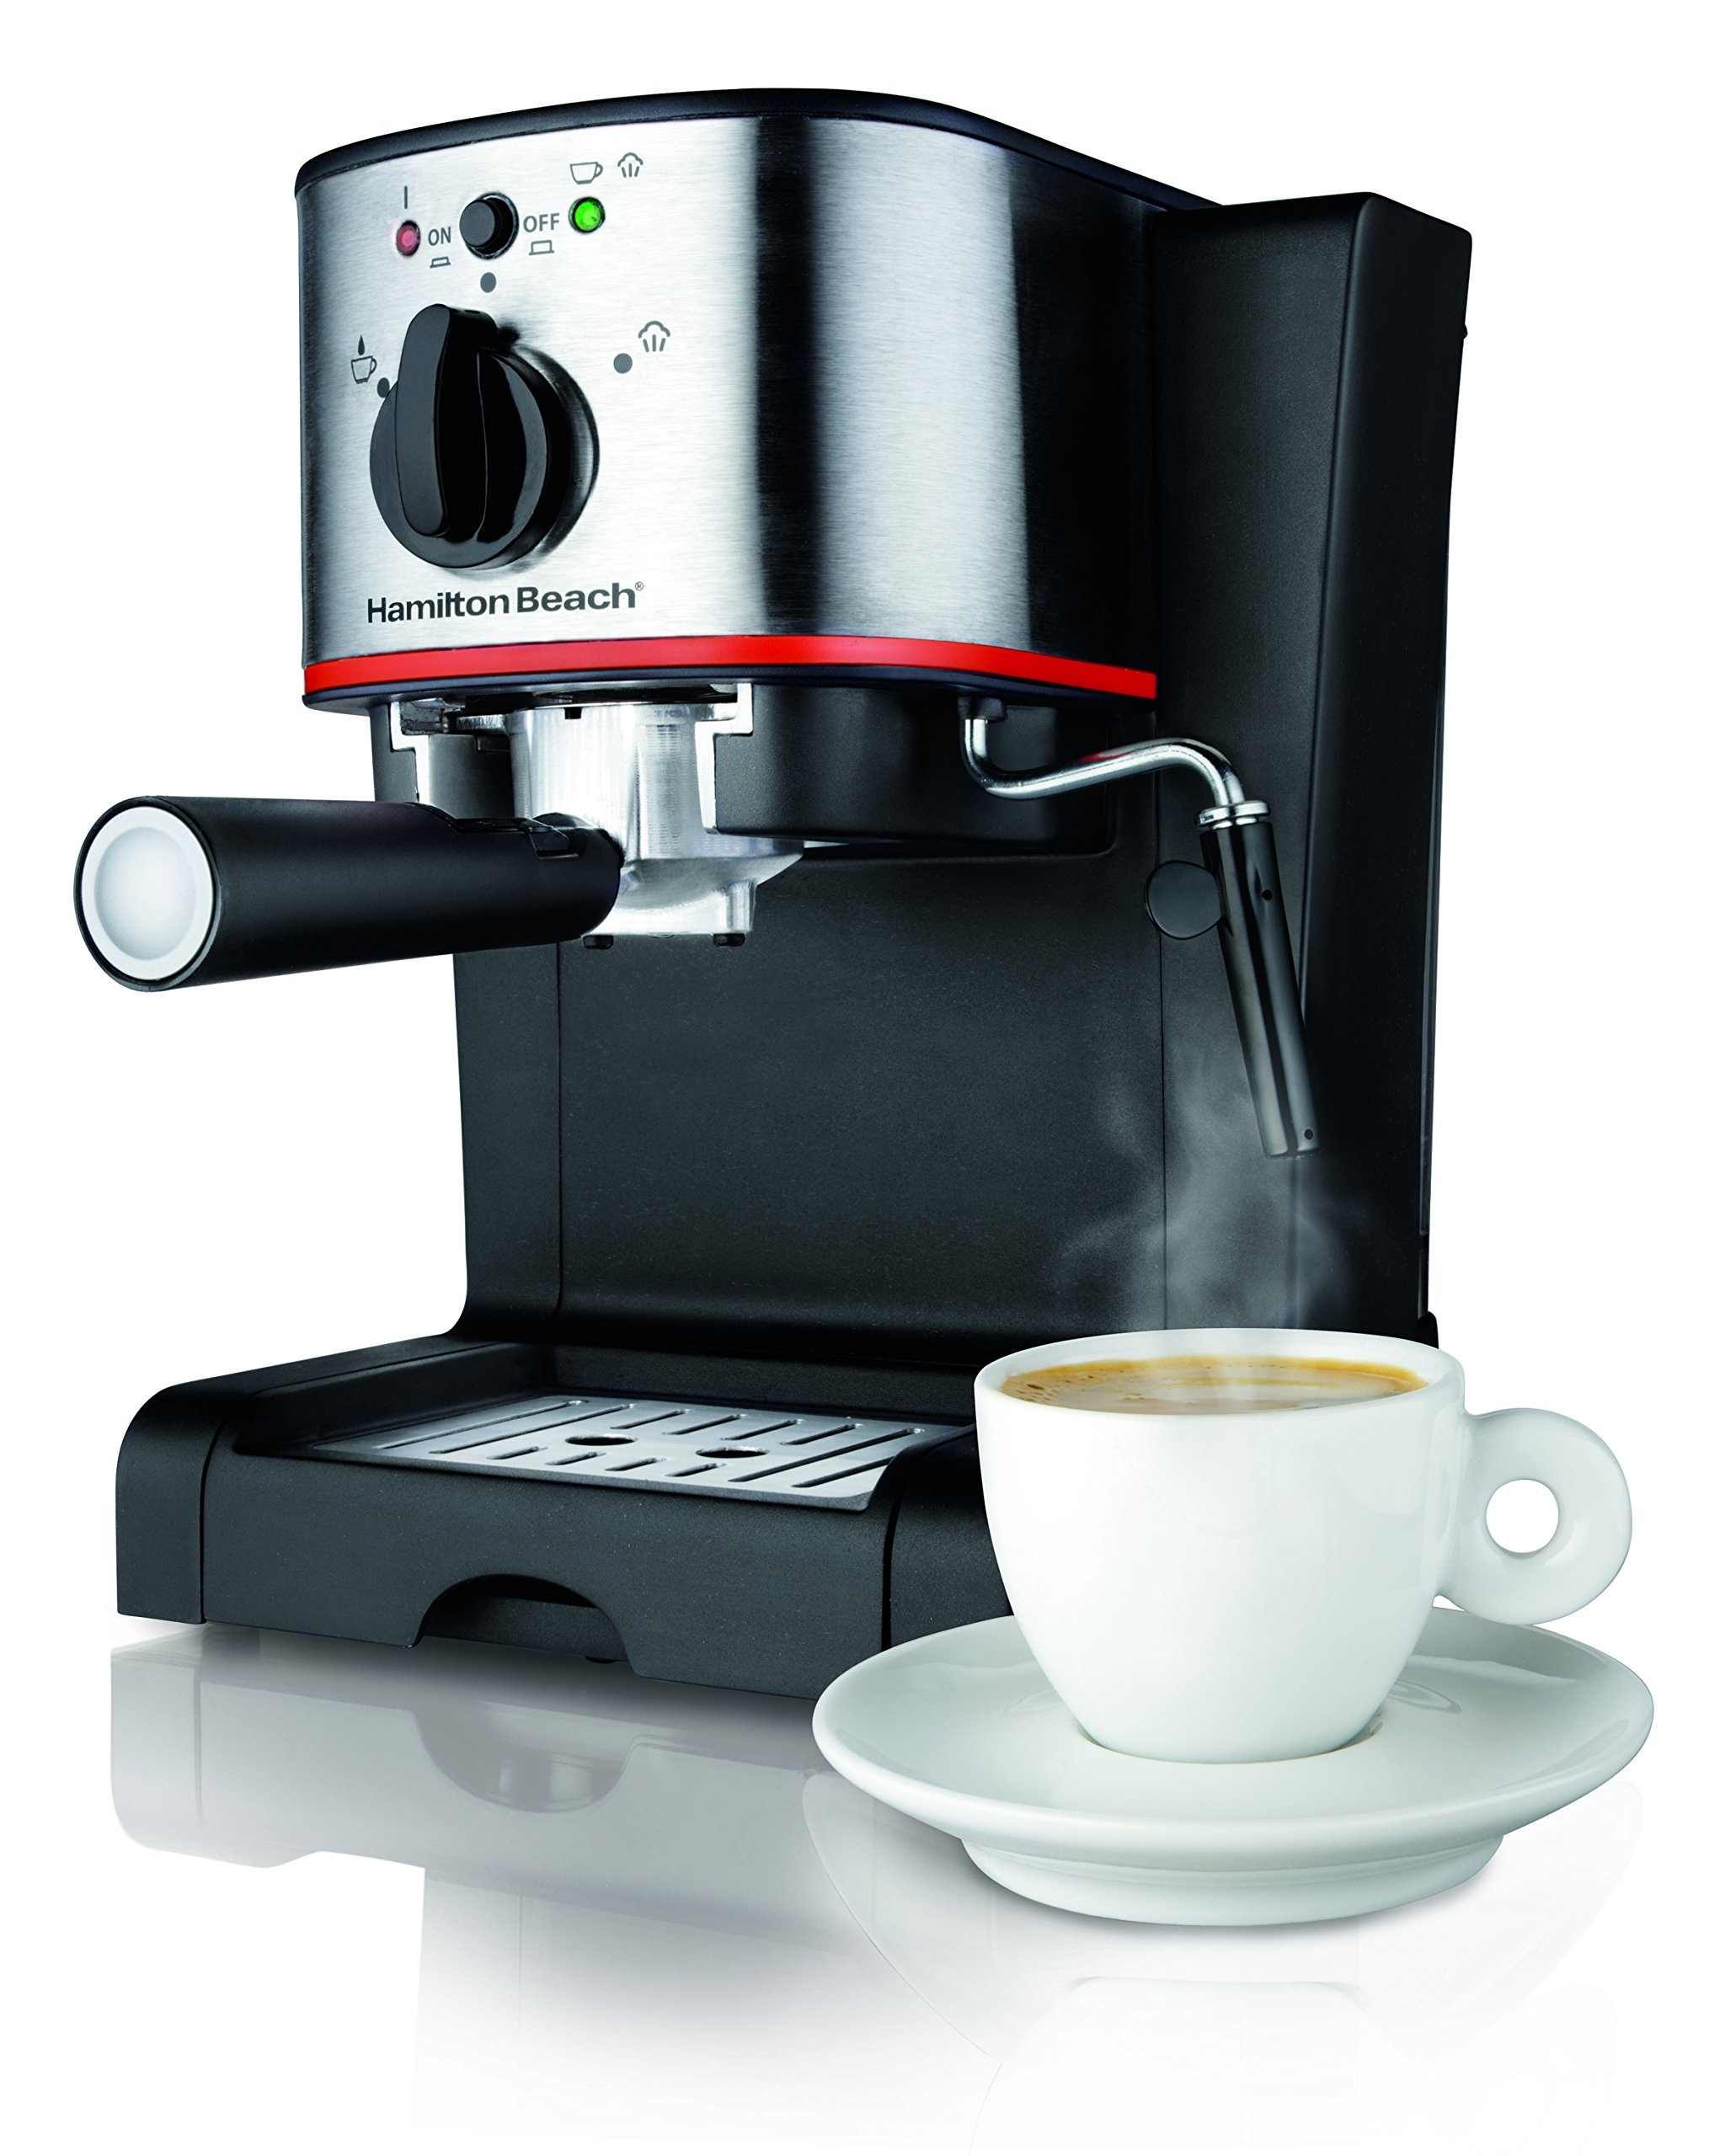 Hamilton Beach 40792 Espresso & Cappuccino Maker, Black by Hamilton Beach